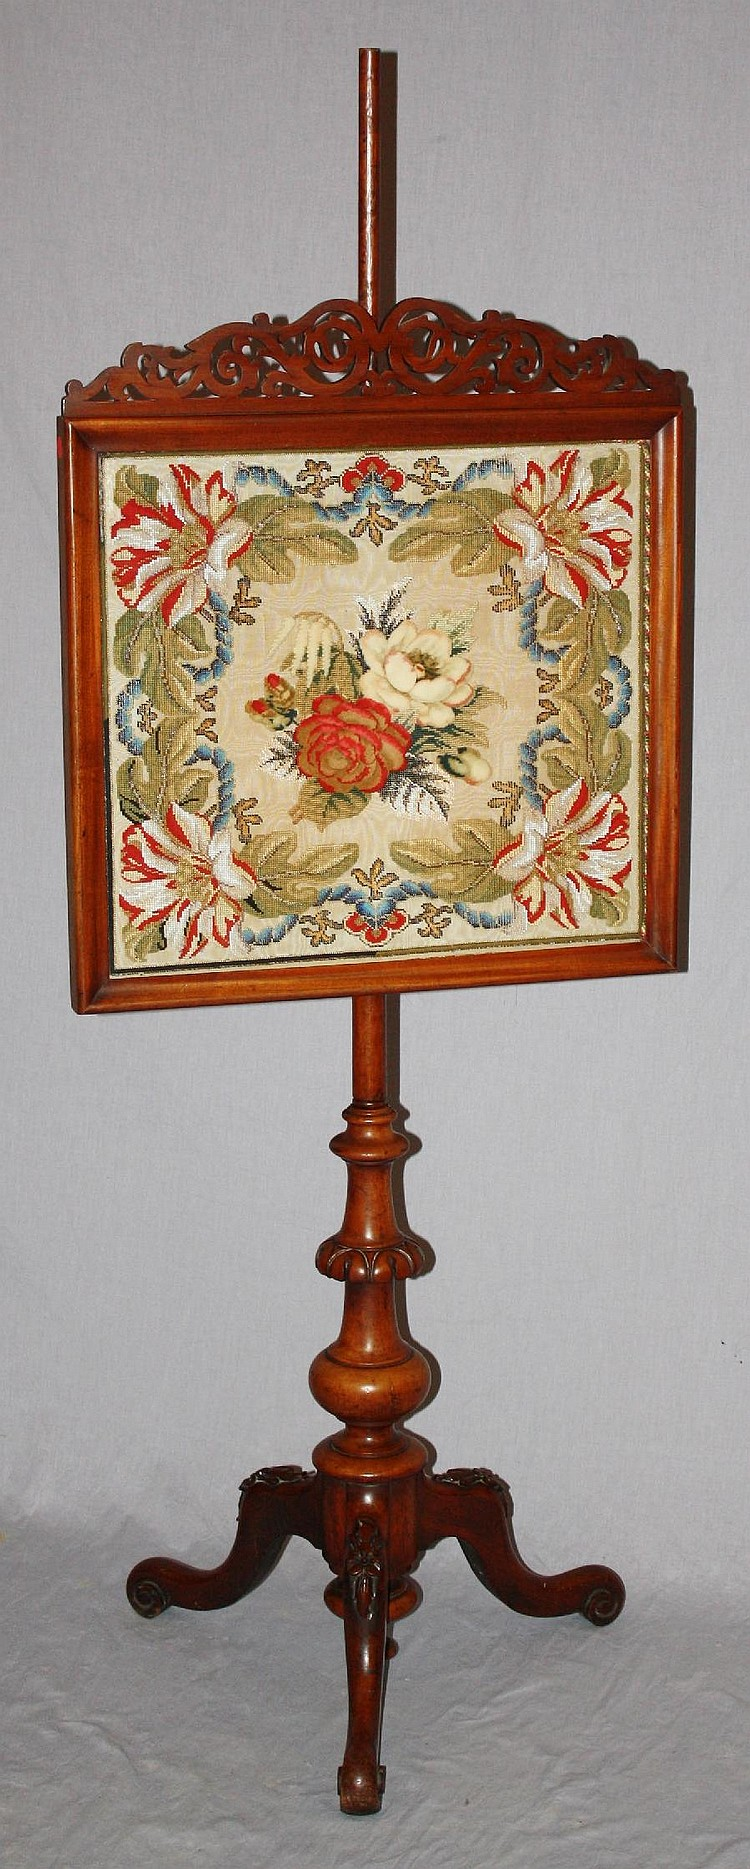 English pole screen in walnut with needlepoint